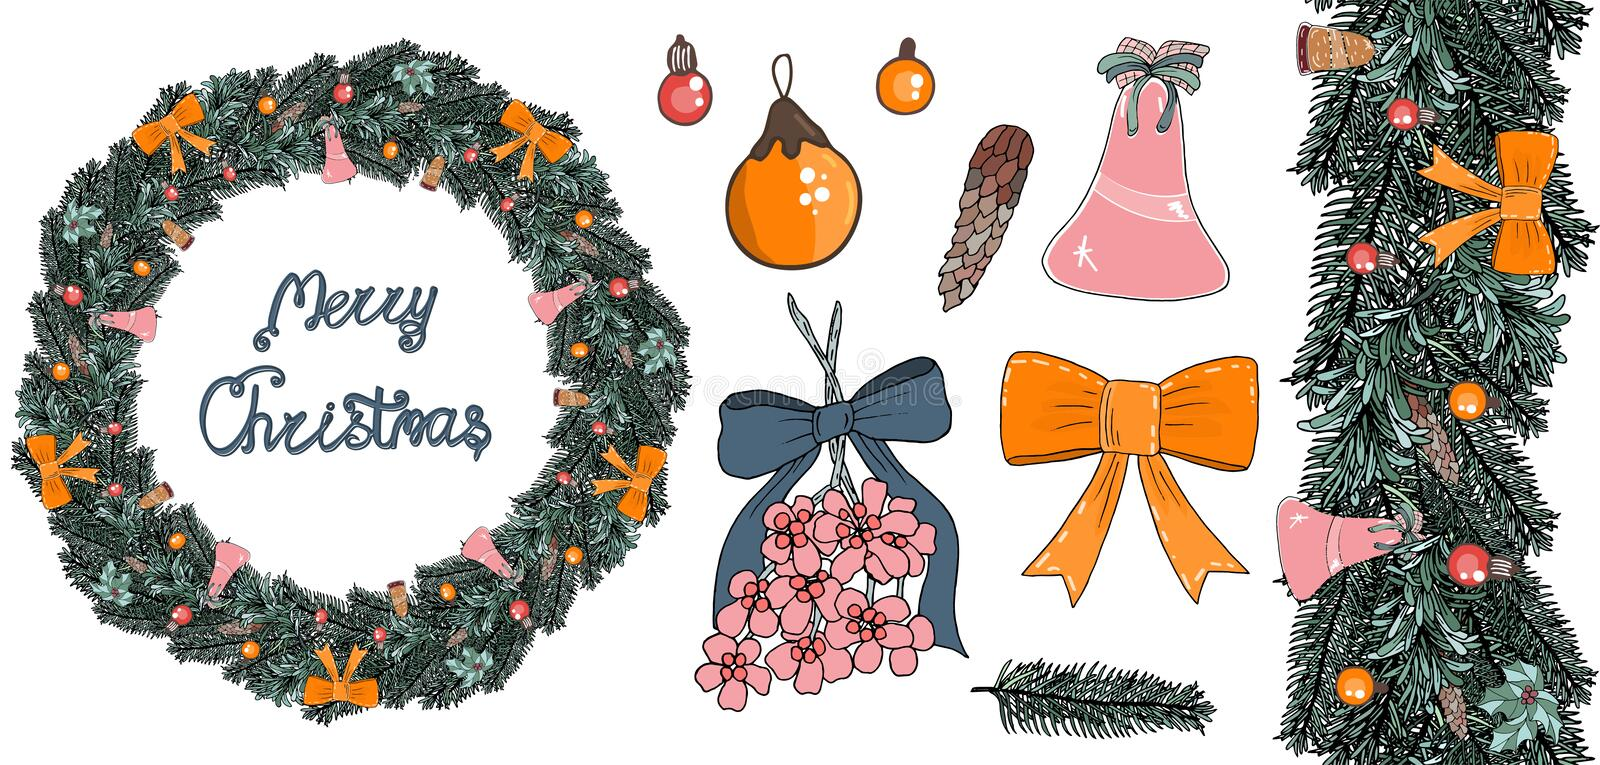 A wreath of fir branches with balls, bows and bells vector illustration